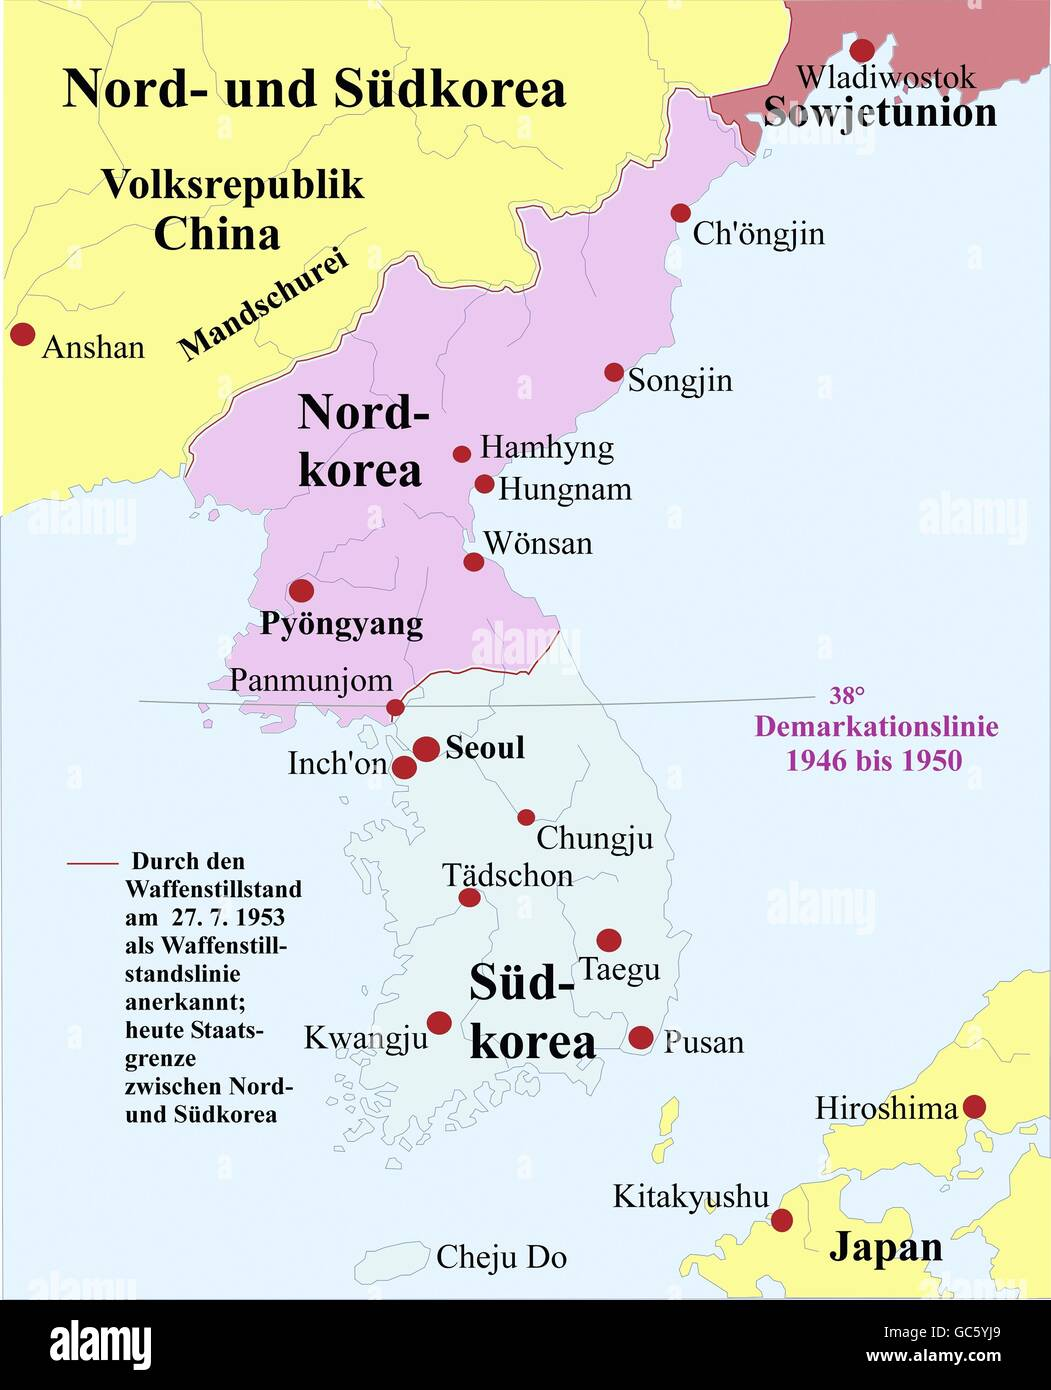 carthography, historical maps, modern times, Korea, division ...